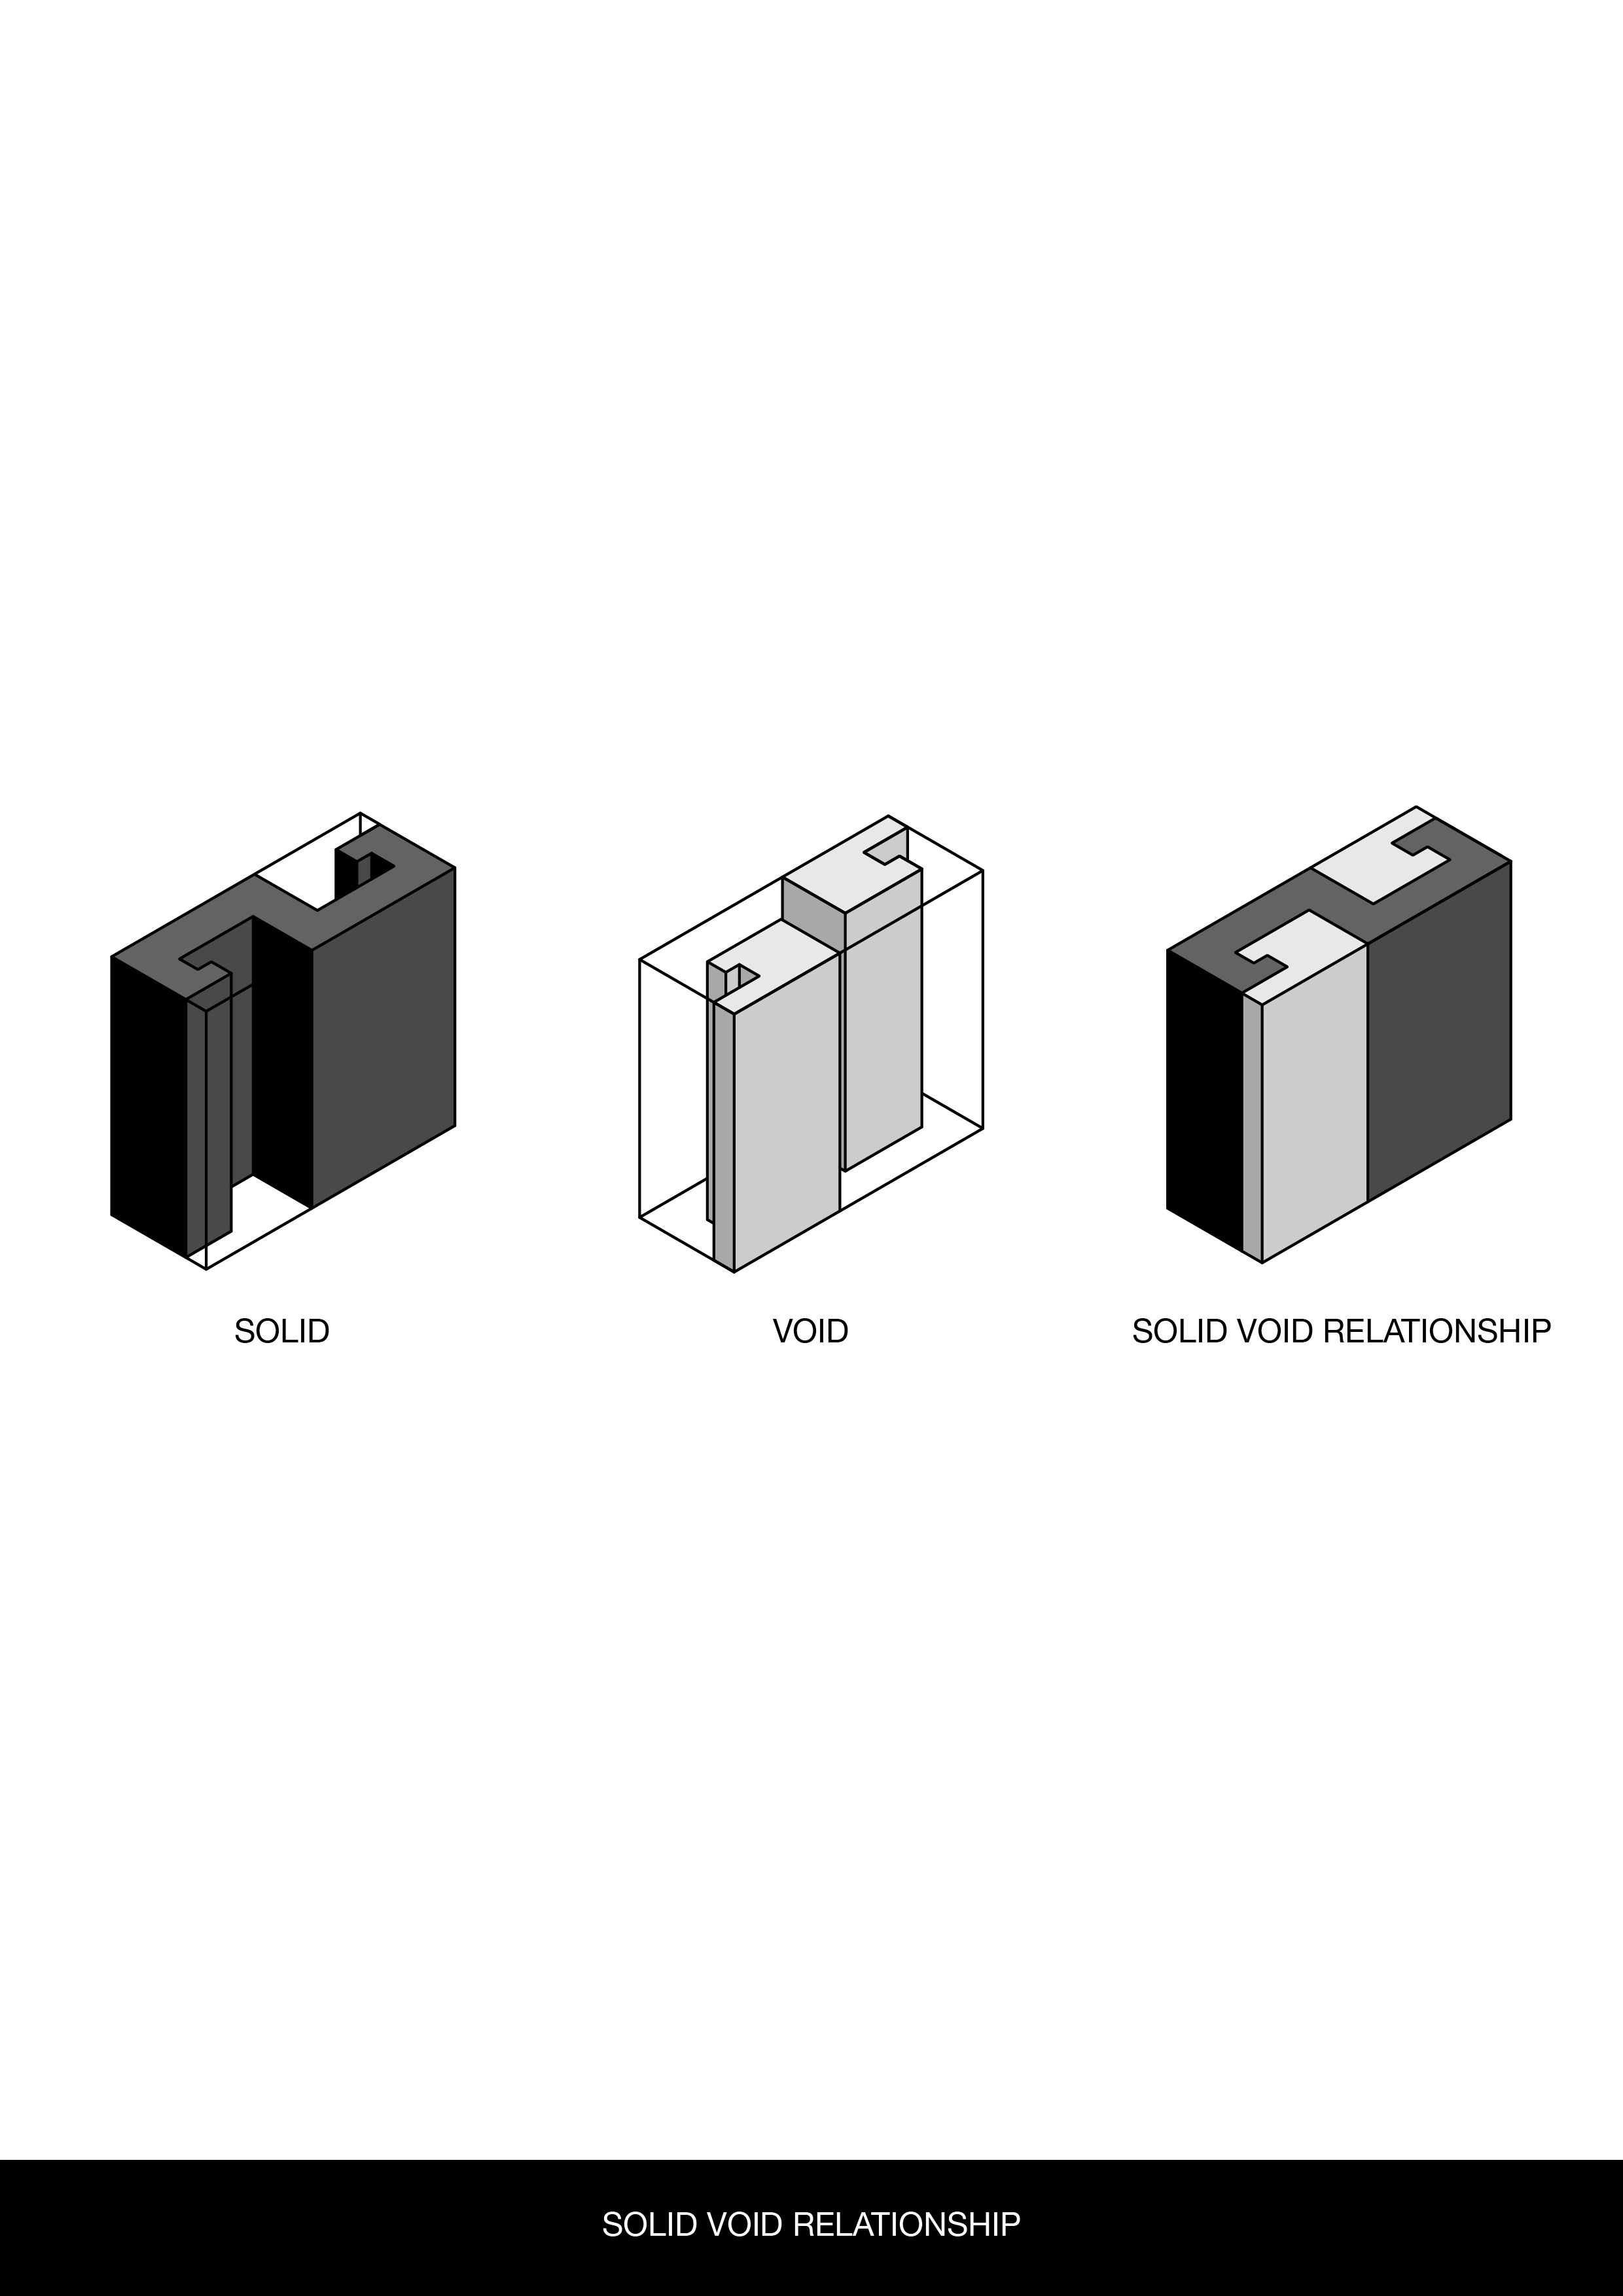 Solid and void diagram diagrams pinterest concept for Solid void theory architecture